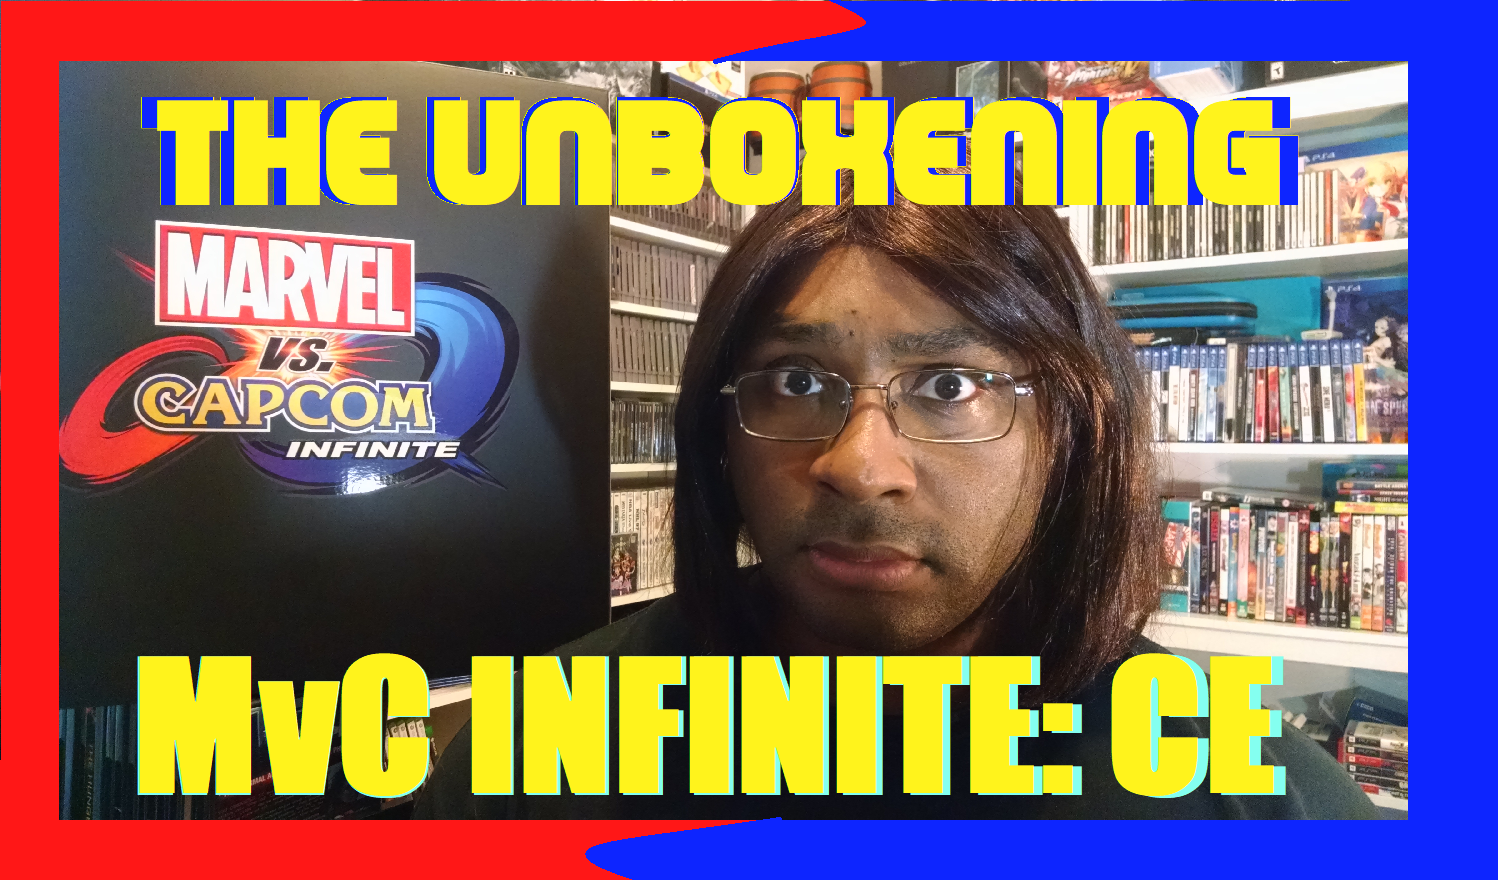 The Unboxening: Marvel vs Capcom Infinite Collector's Edition